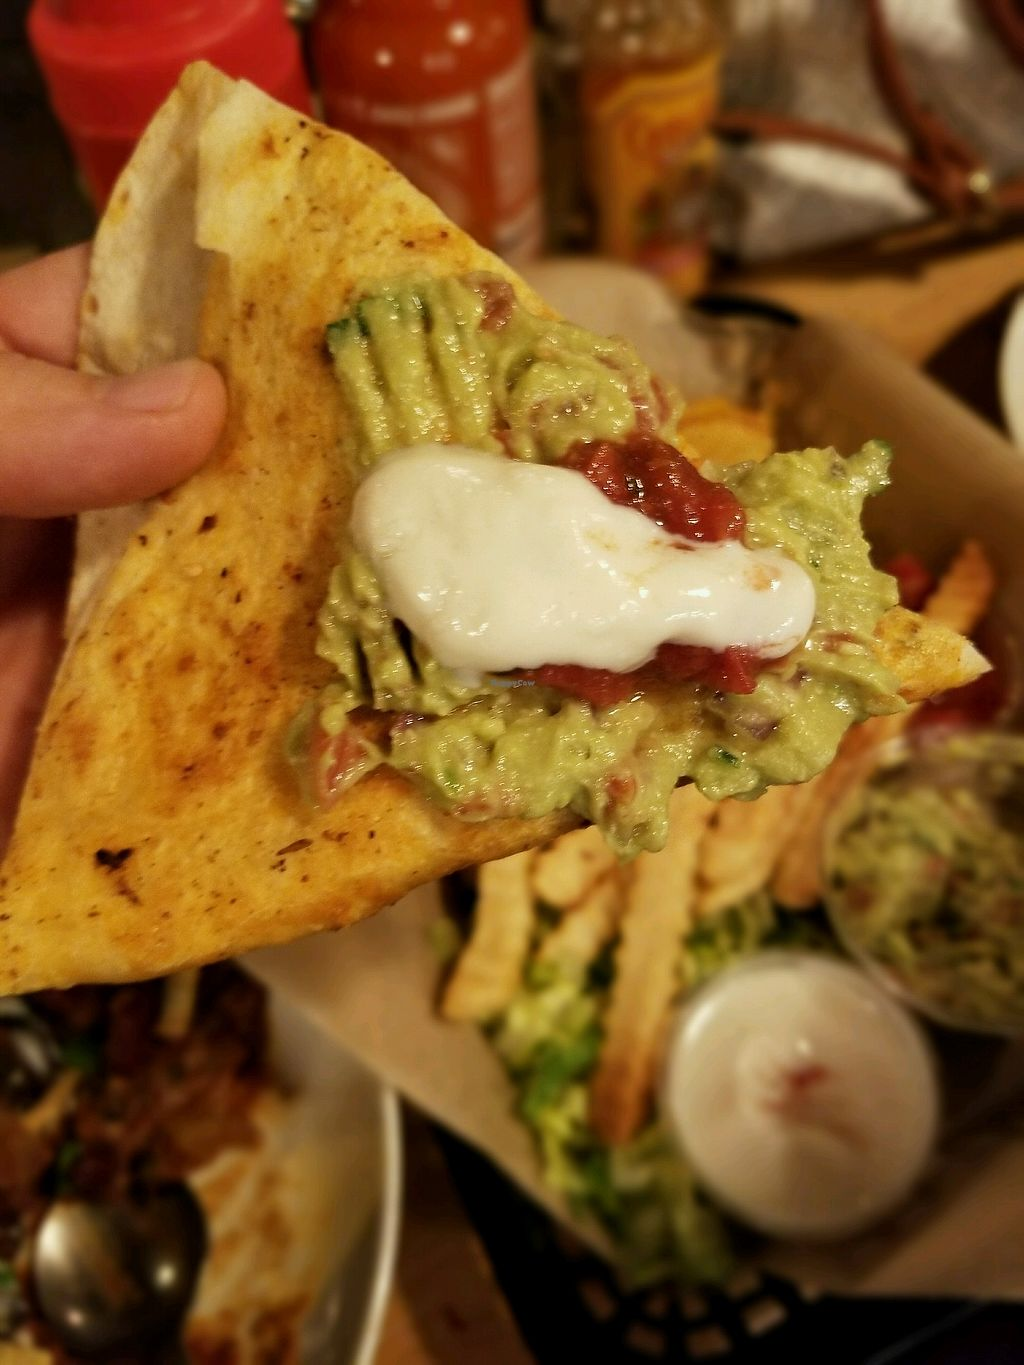 """Photo of J Selby's  by <a href=""""/members/profile/IanHoxworth"""">IanHoxworth</a> <br/>quesadilla  <br/> November 21, 2017  - <a href='/contact/abuse/image/90026/327702'>Report</a>"""